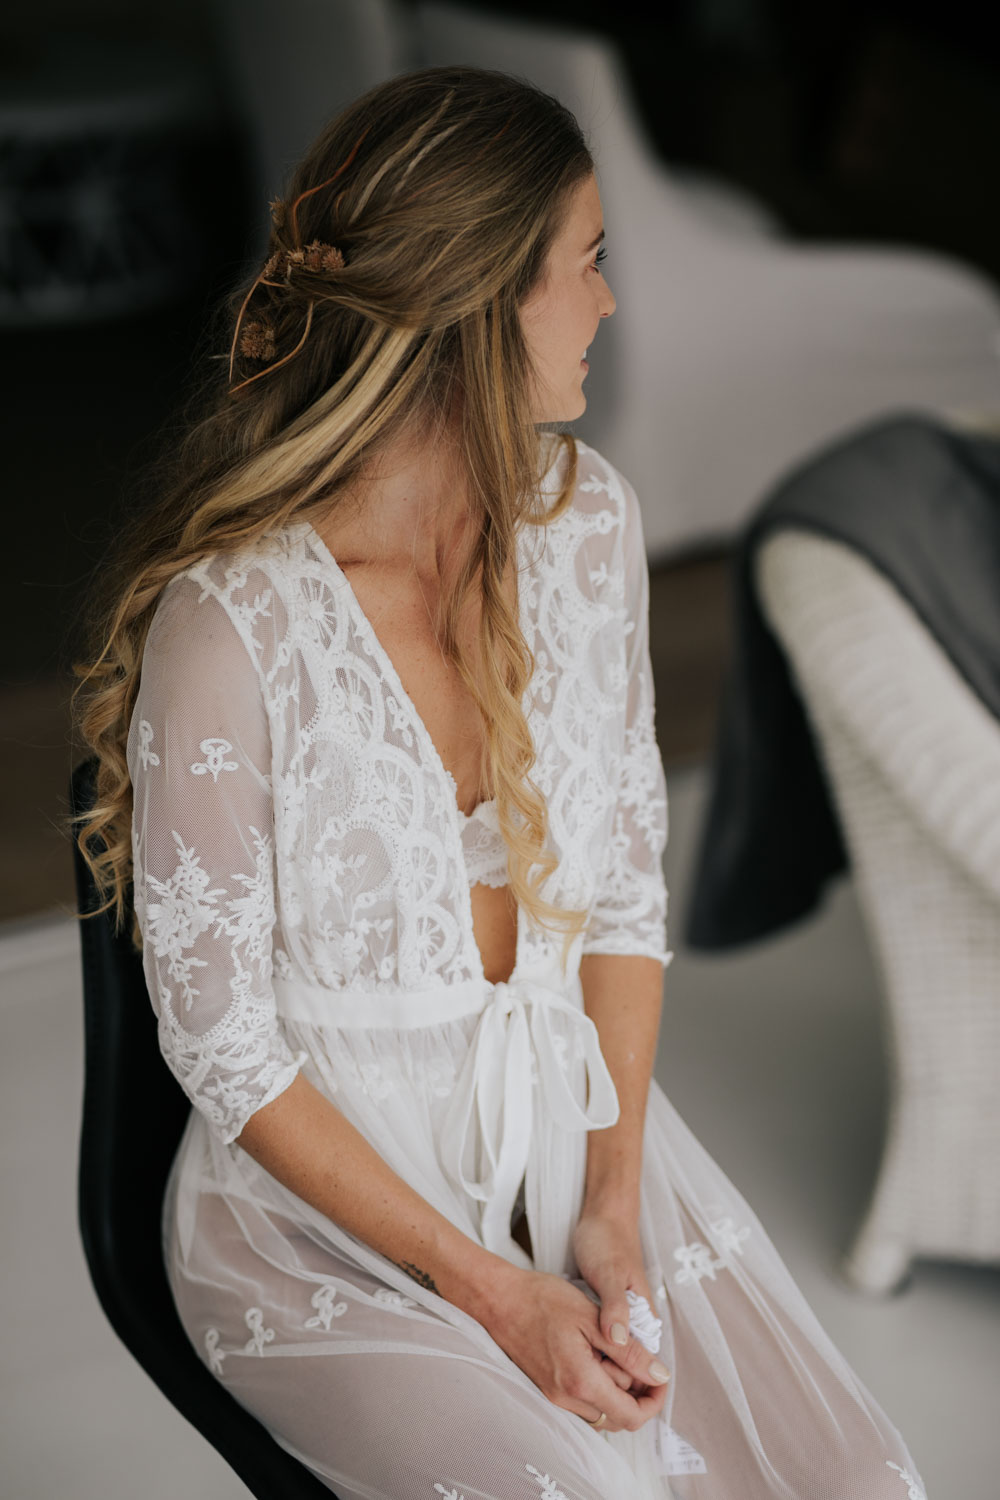 Beautiful boho bride in lace gown getting her hair done on her wedding day